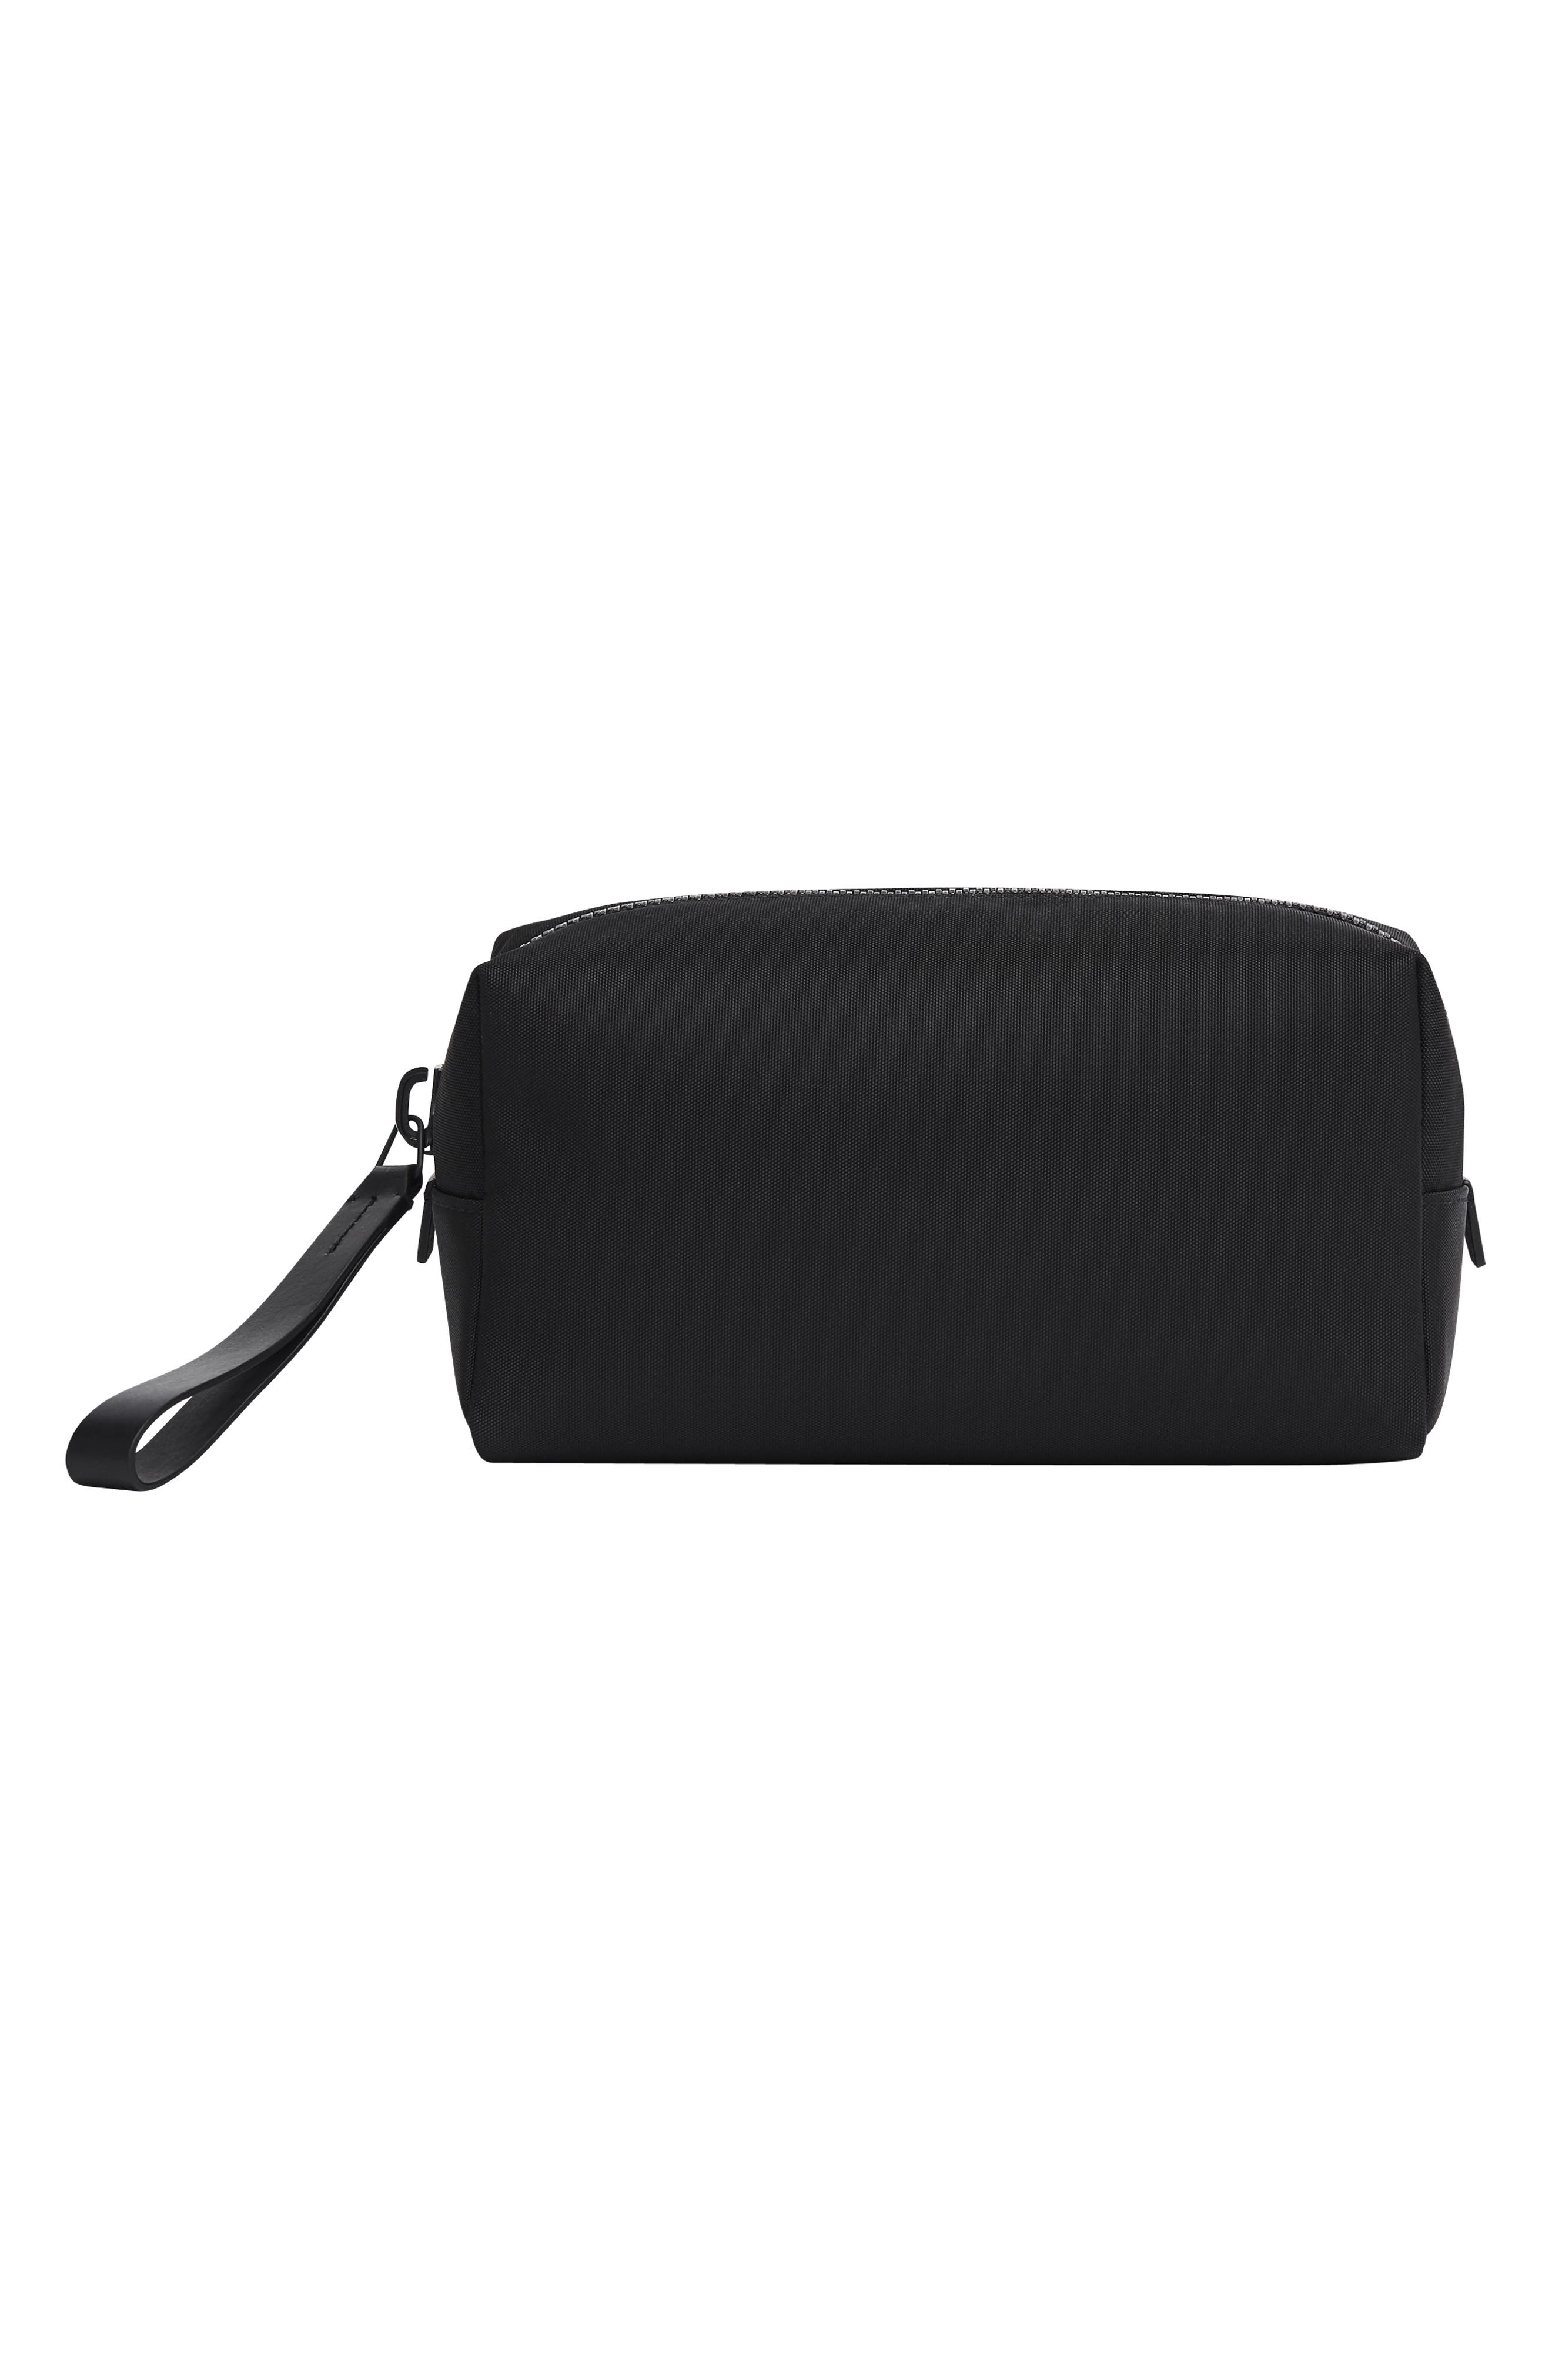 Nylon Dopp Kit,                             Alternate thumbnail 8, color,                             BLACK NYLON/ BLACK LEATHER